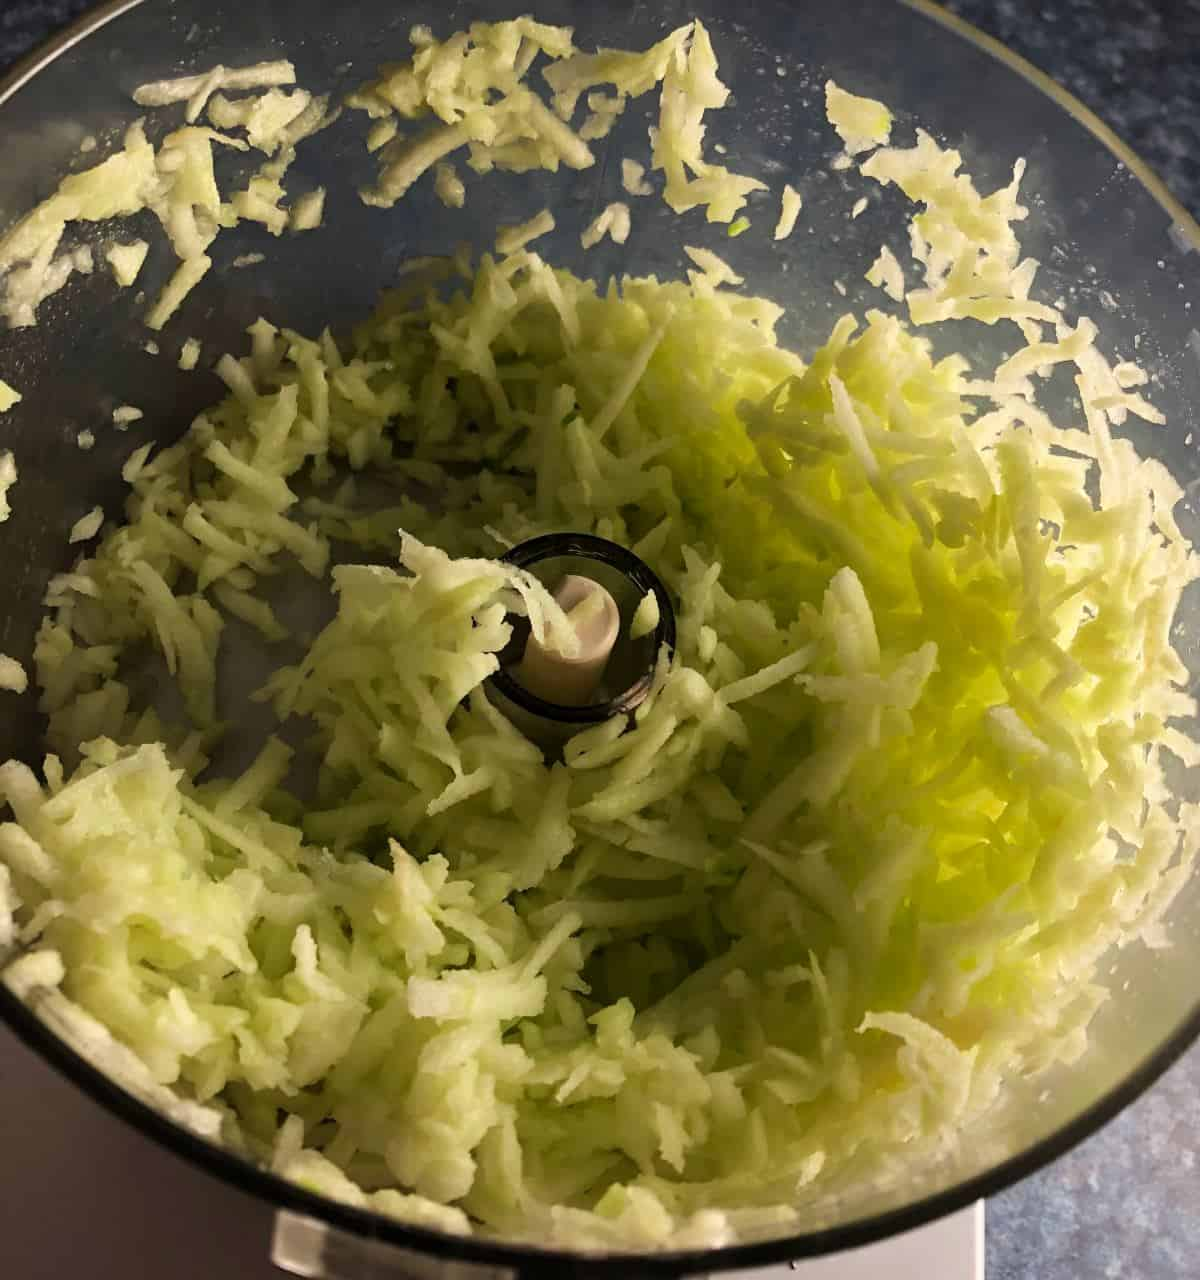 shredded apple in a food processor